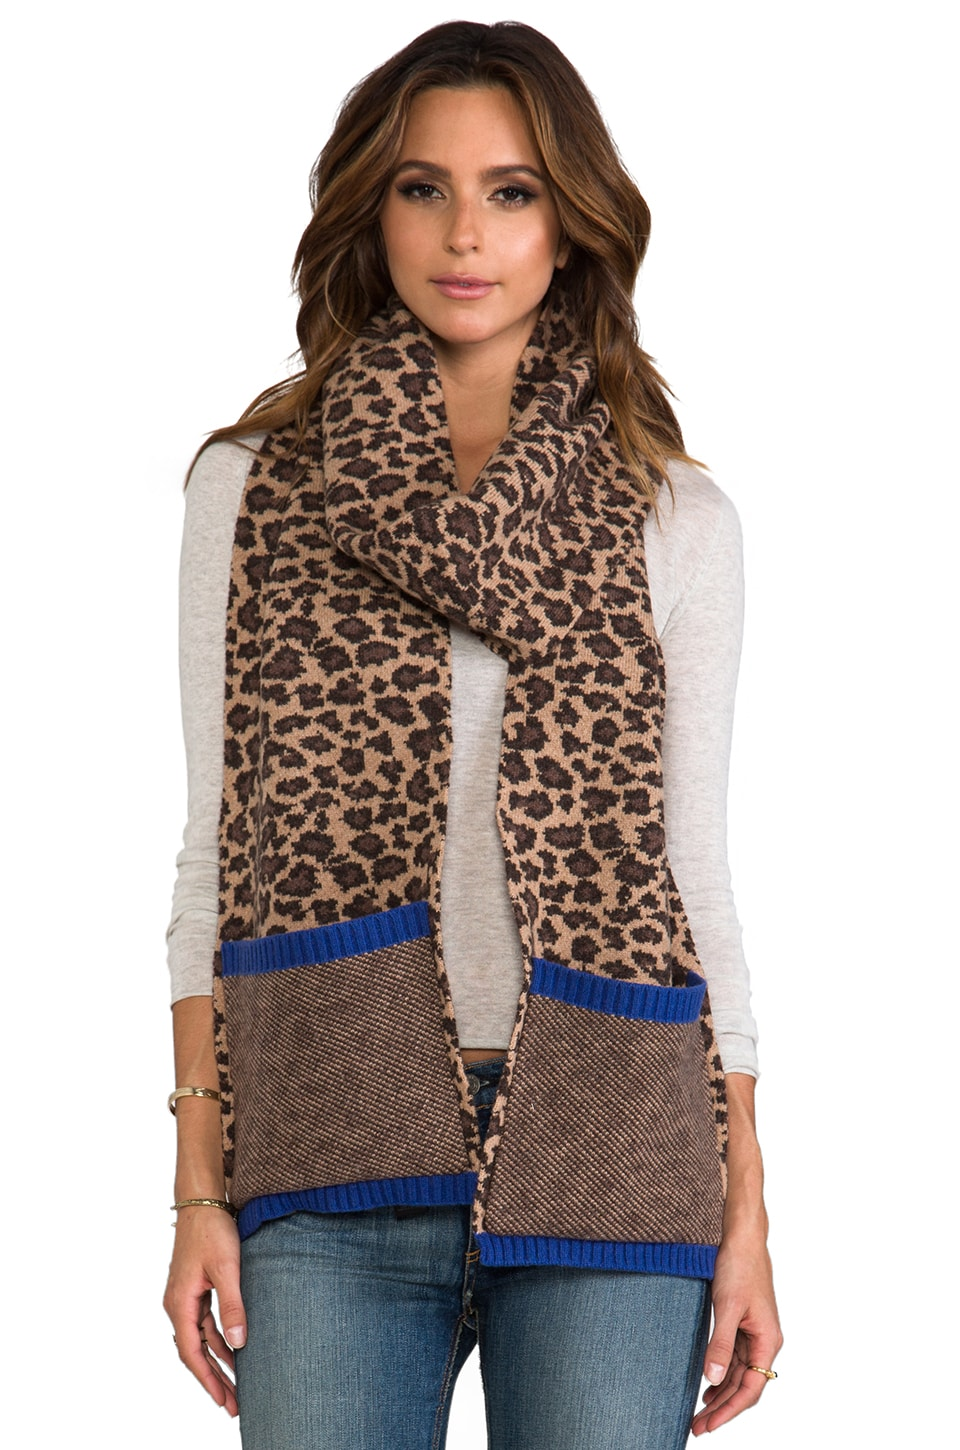 Marc by Marc Jacobs Lenora Leopard Scarf in Chicory Brown Multi